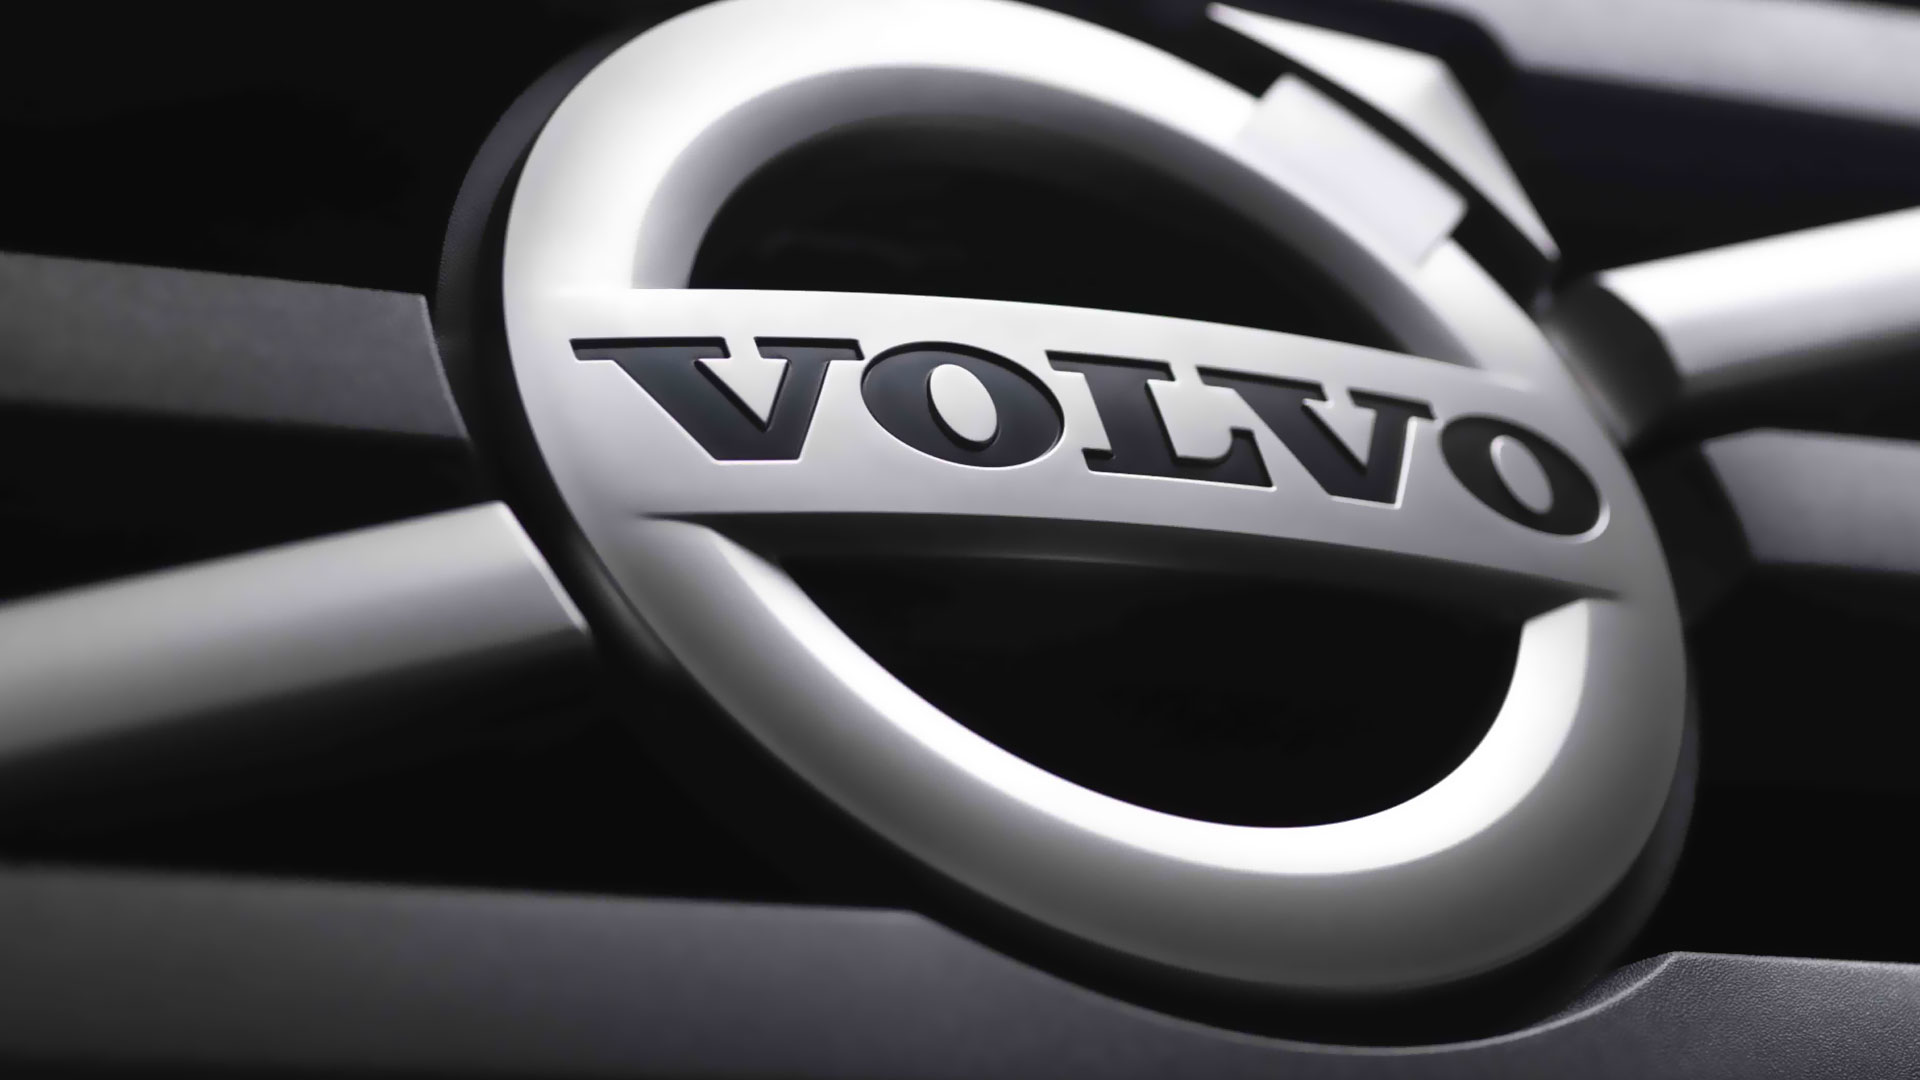 volvo logo desktop wallpaper 59095